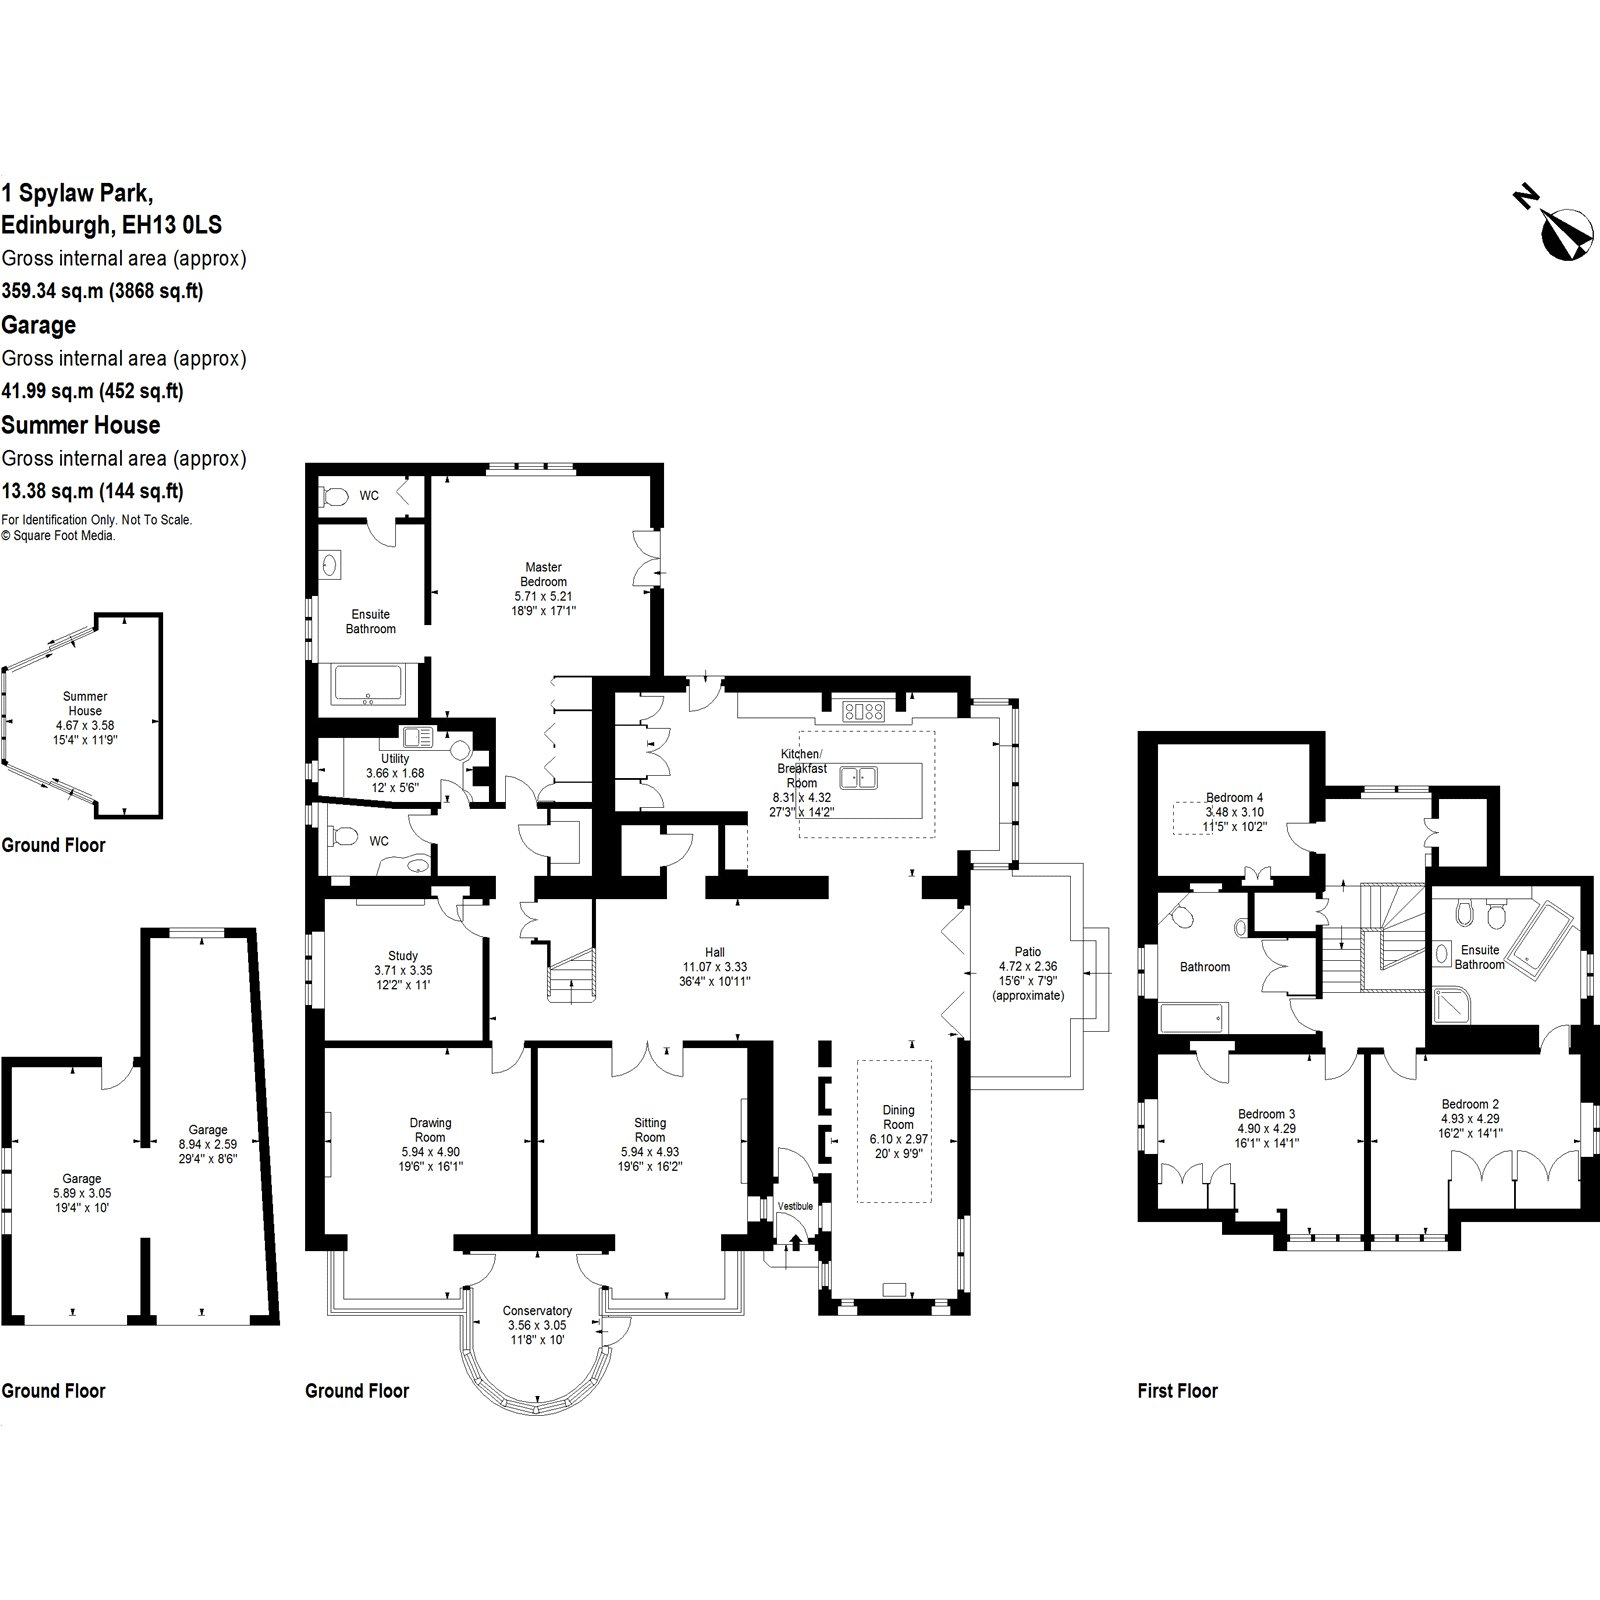 Floorplans for Spylaw Park, Edinburgh, EH13